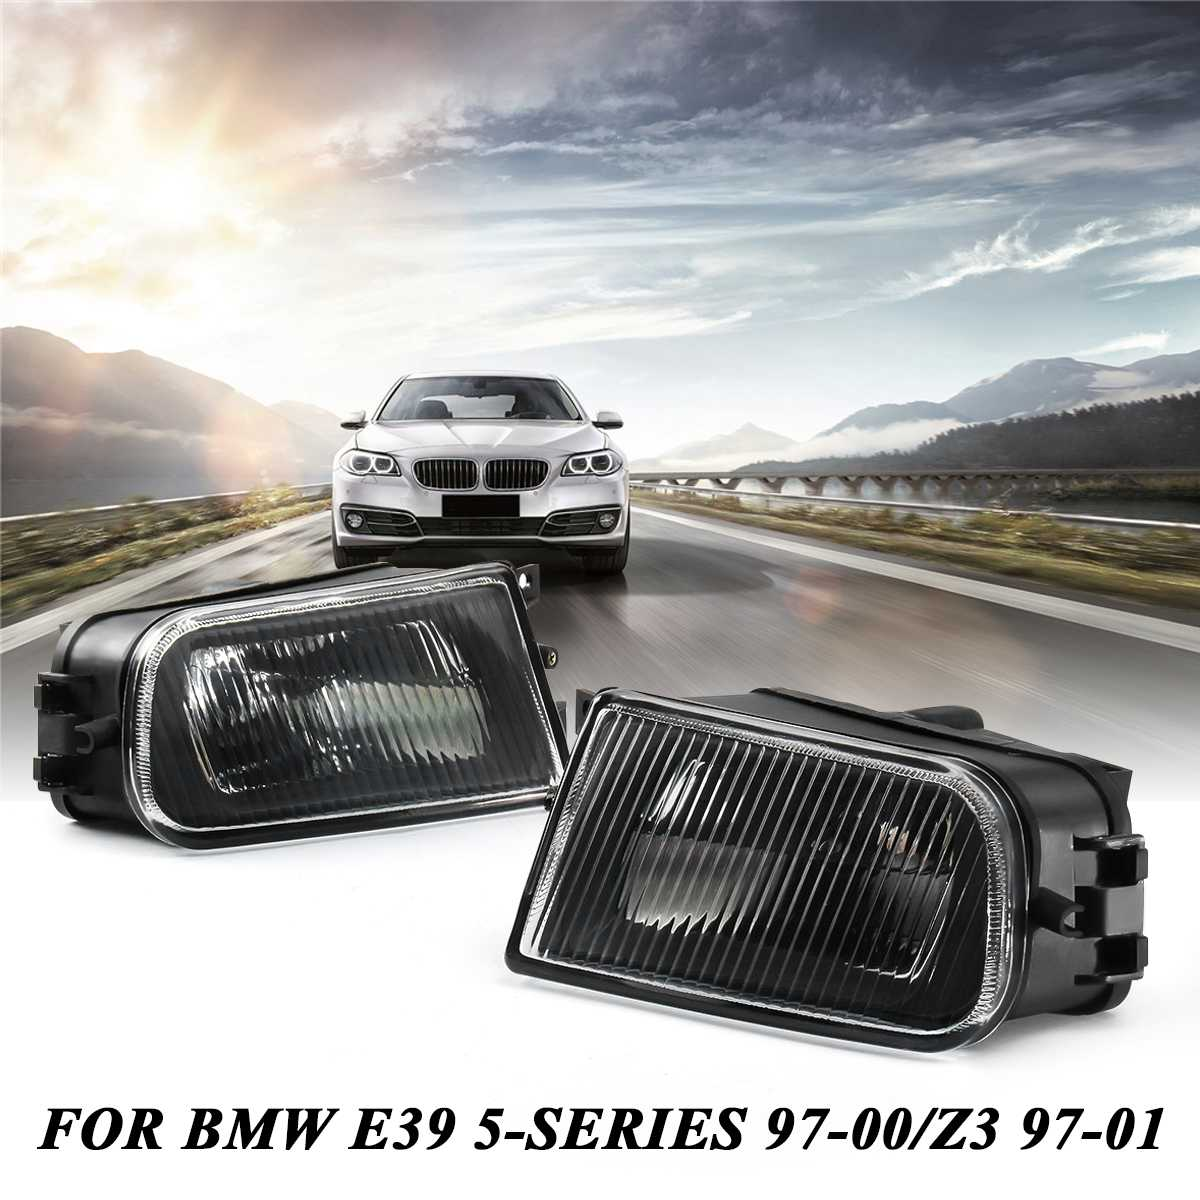 1 Pair Clear Front Driving Bumper Fog Light Housing For BMW E39 5 Series 528i  540i 1997-2000 / Z3 1997-2001 Replacement Parts